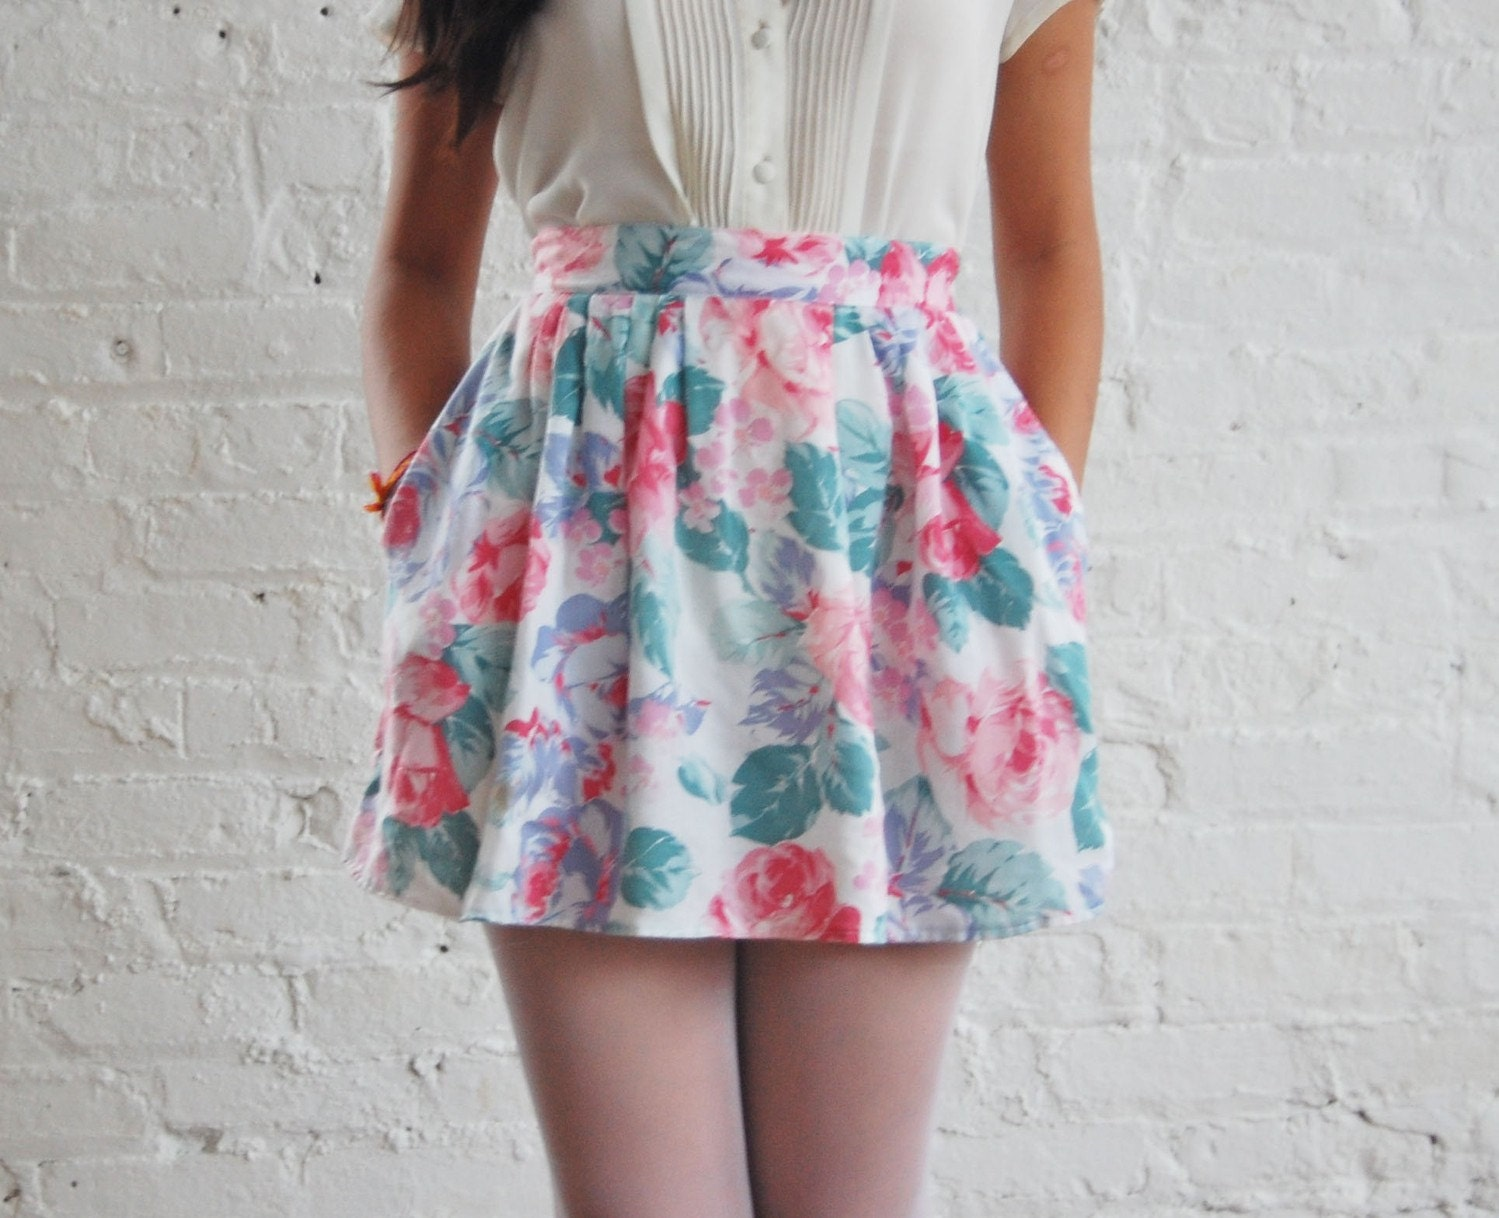 S A L E ... cabbage rose skirt (s/m)